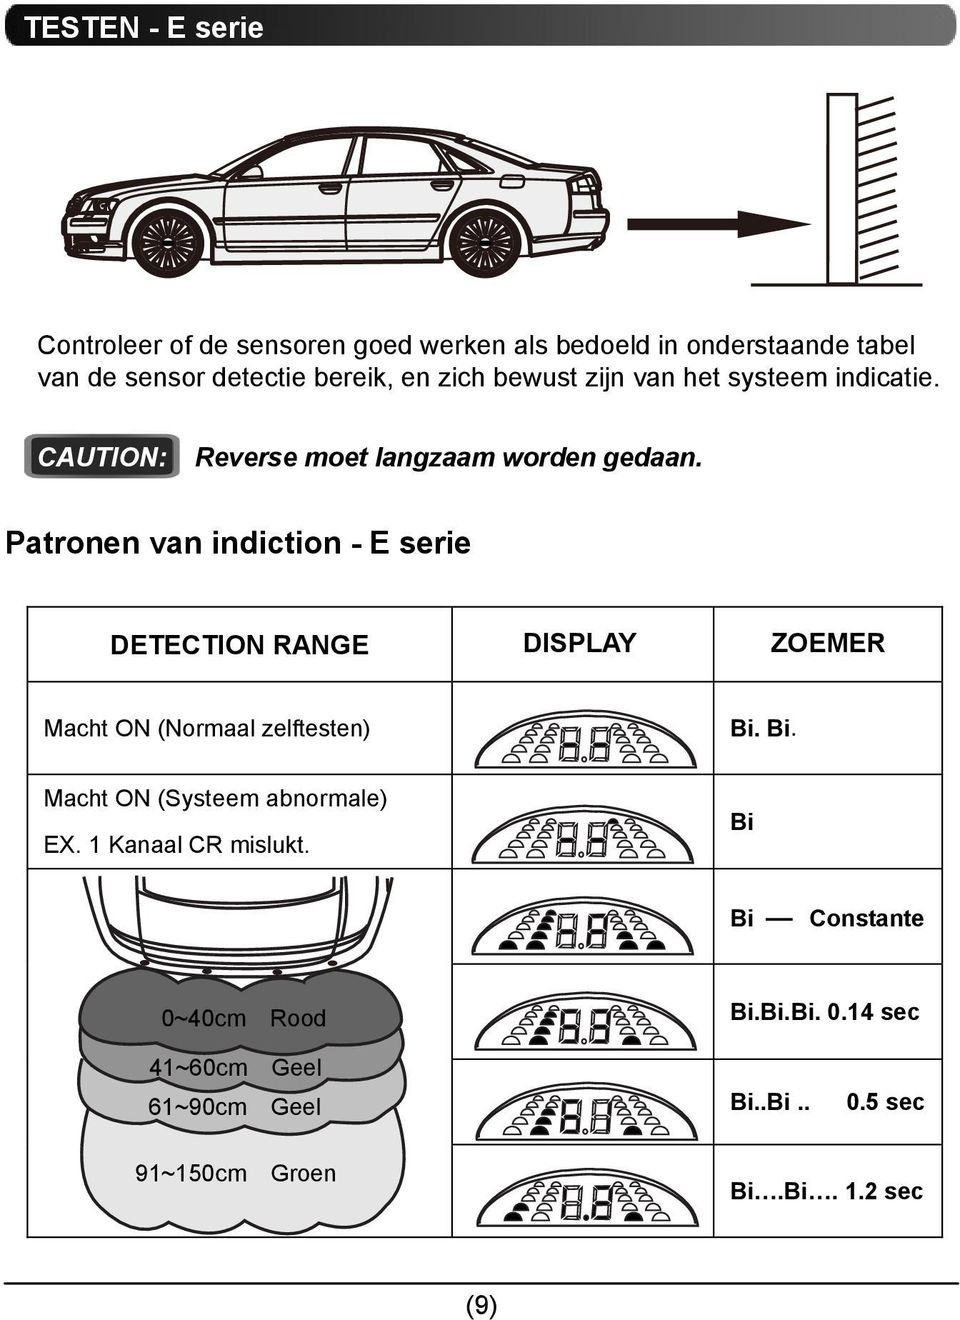 Patronen van indiction - E serie DETECTION RANGE DISPLAY ZOEMER Macht ON (Normaal zelftesten) Bi.